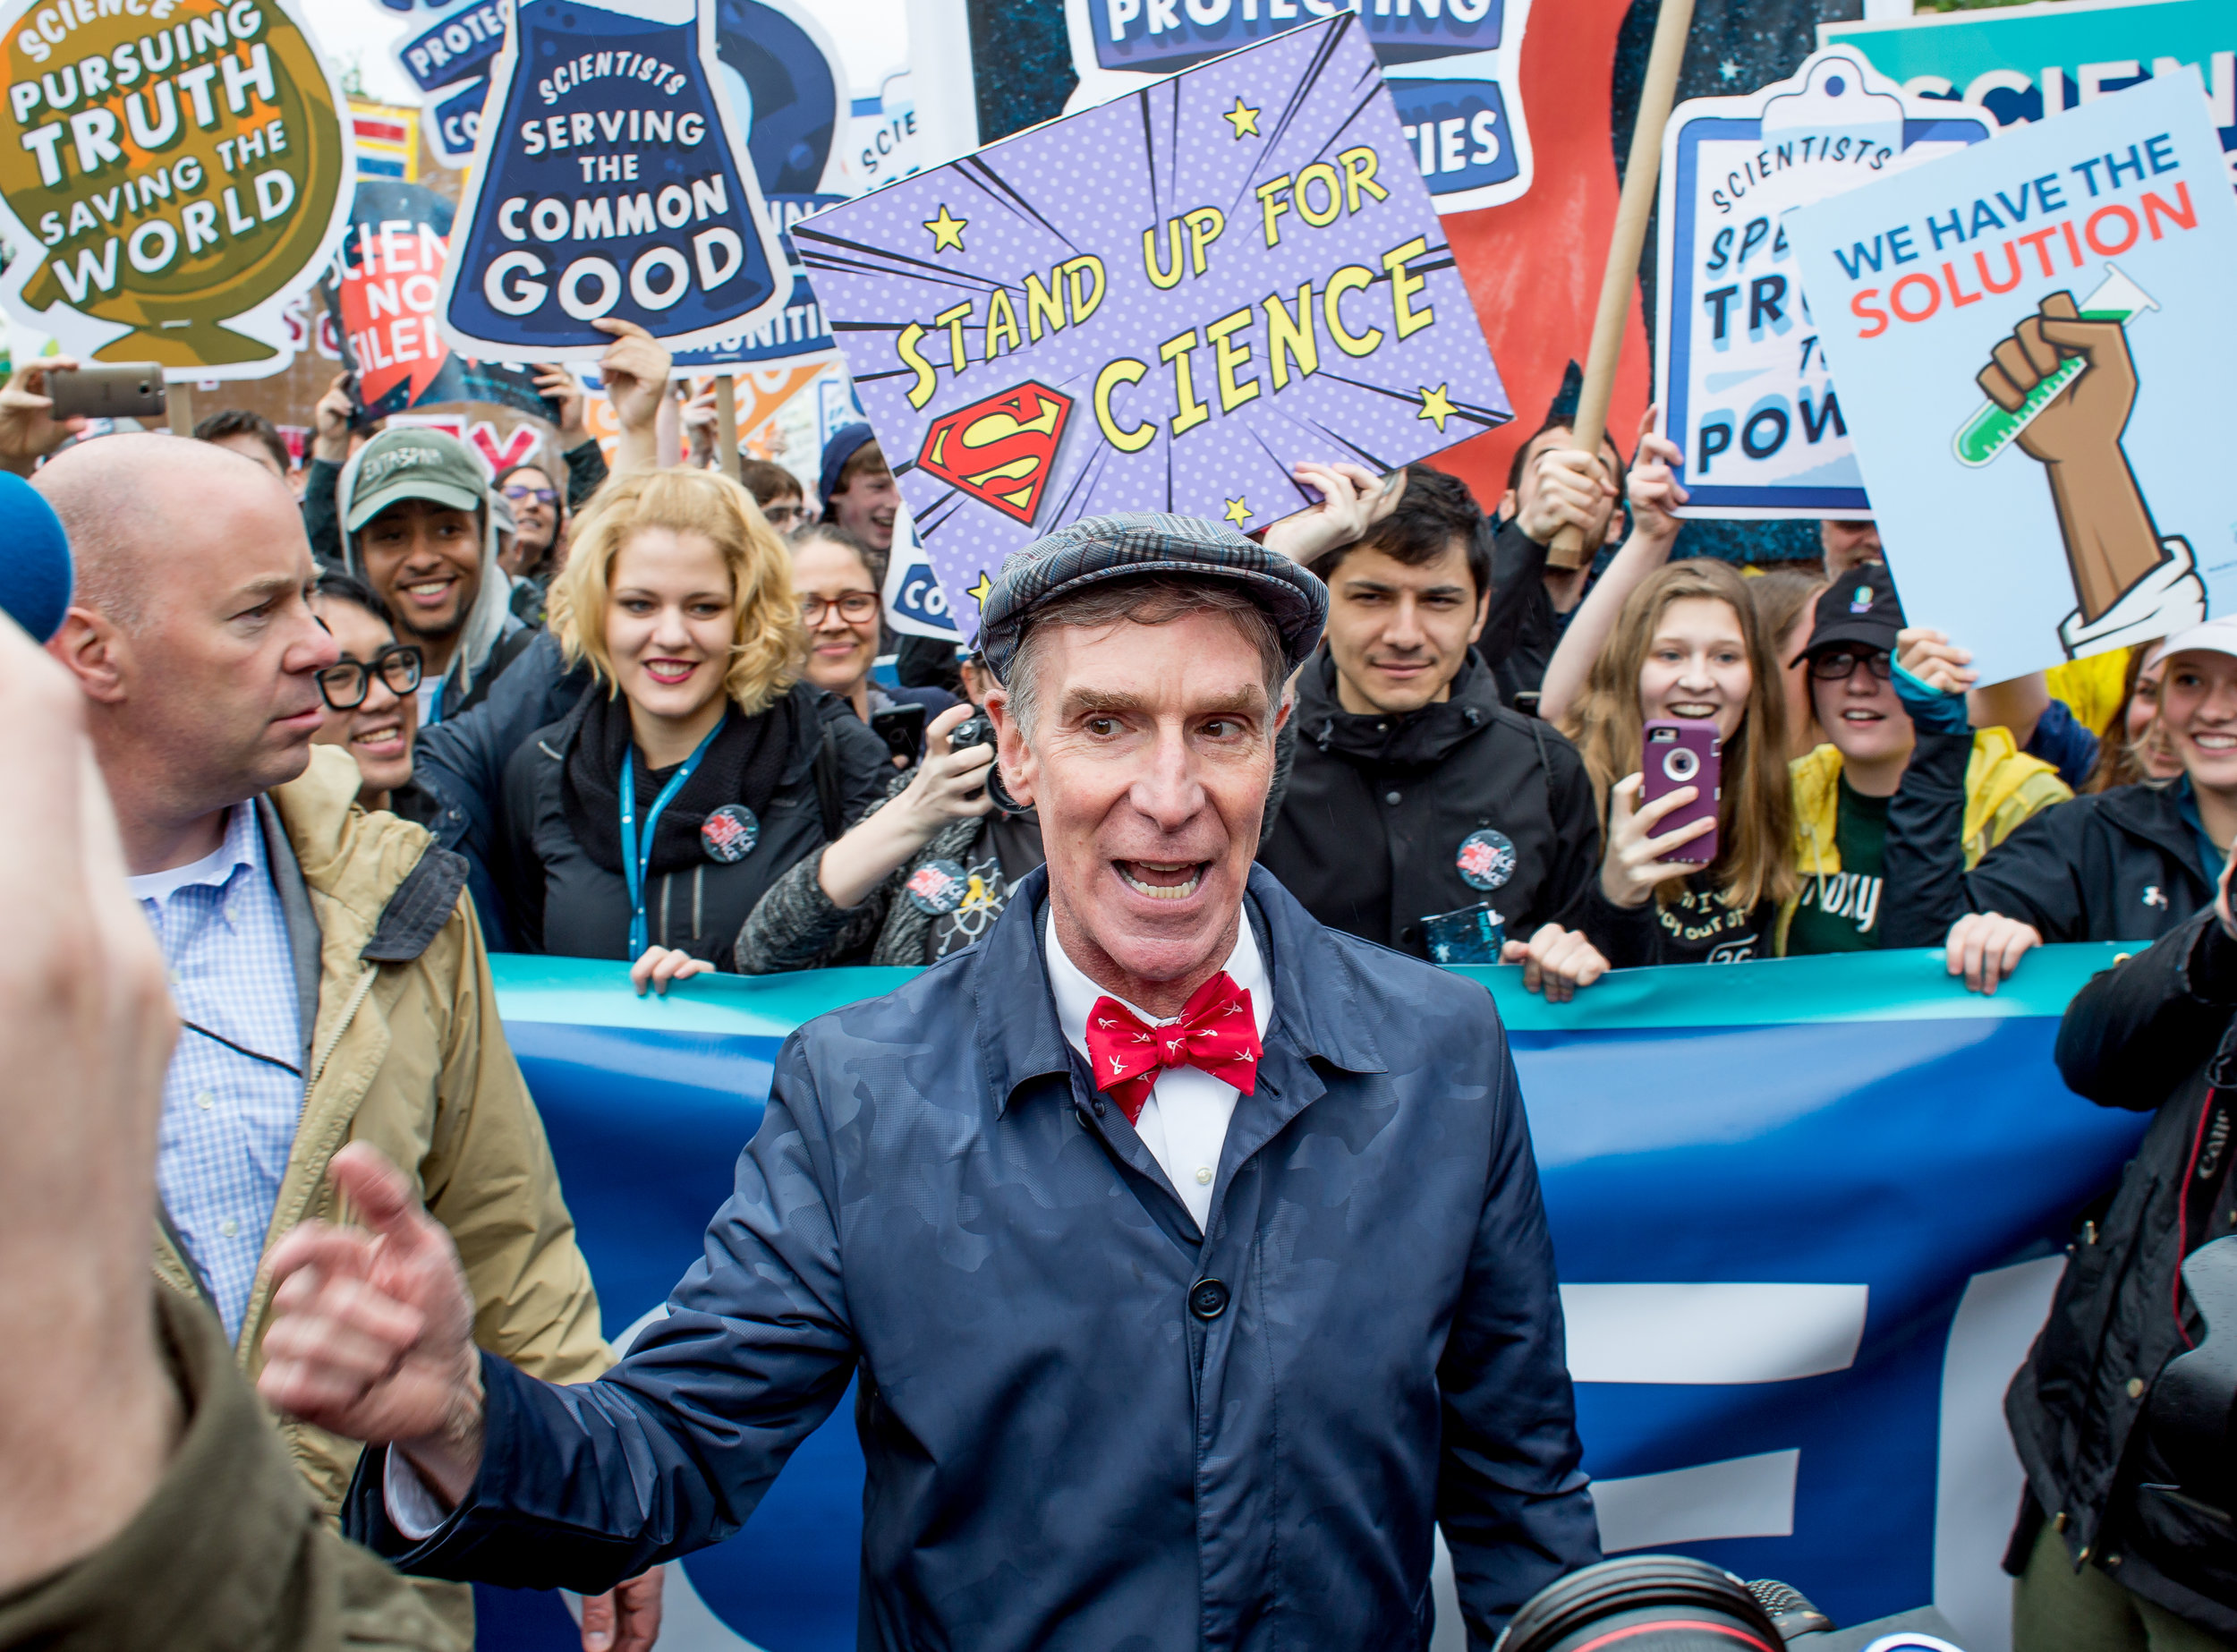 Bill Nye the Science Guy speaks activists before the start of the March for Science in Washington DC on April 22, 2017